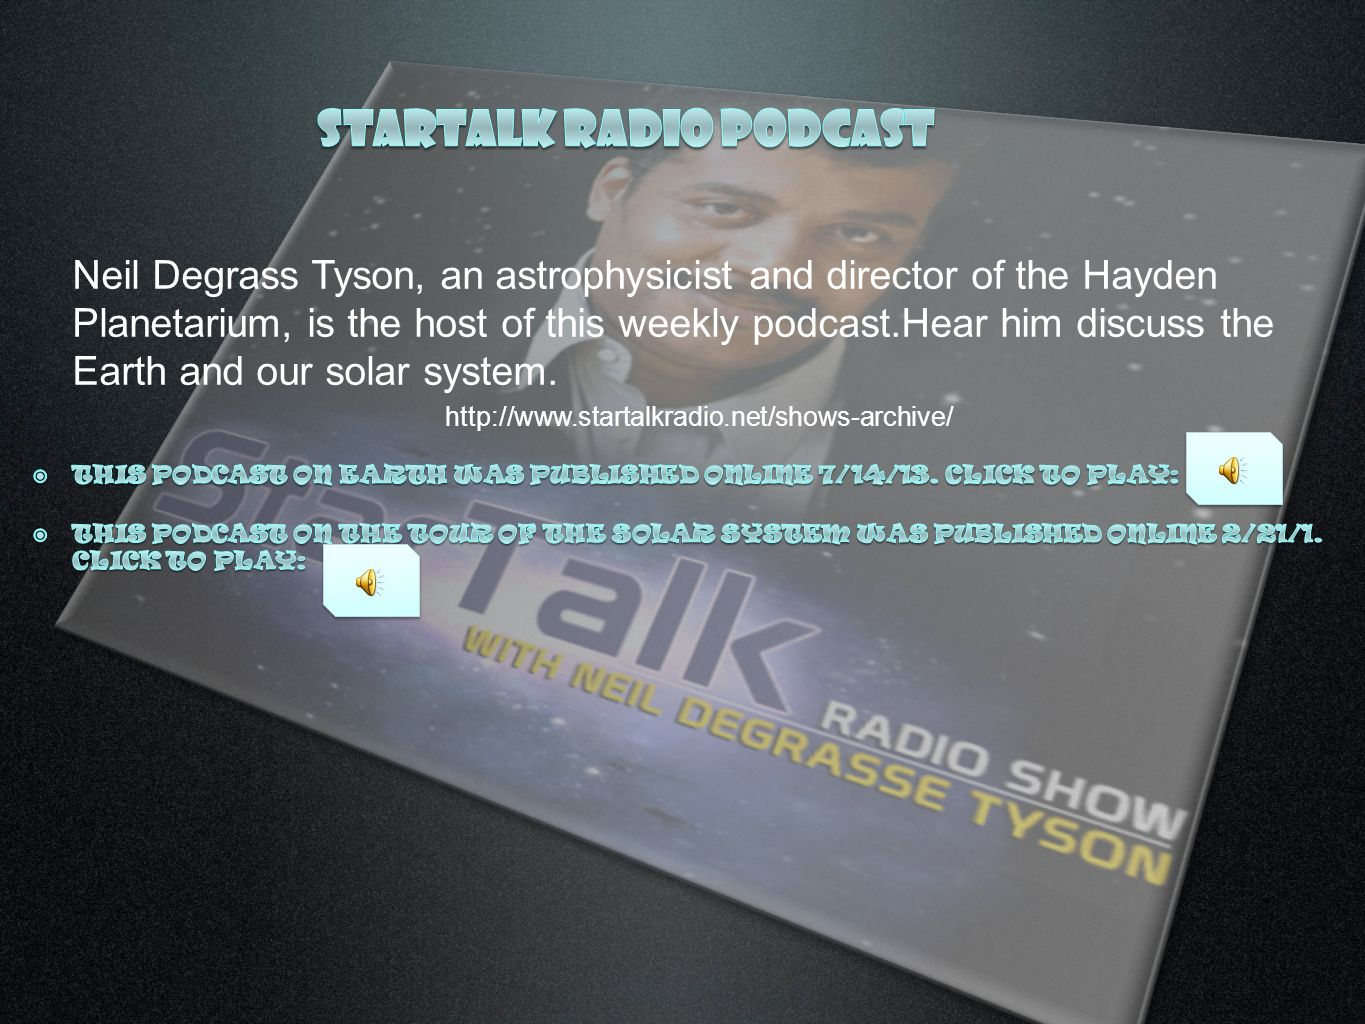 Startalk radio podcast